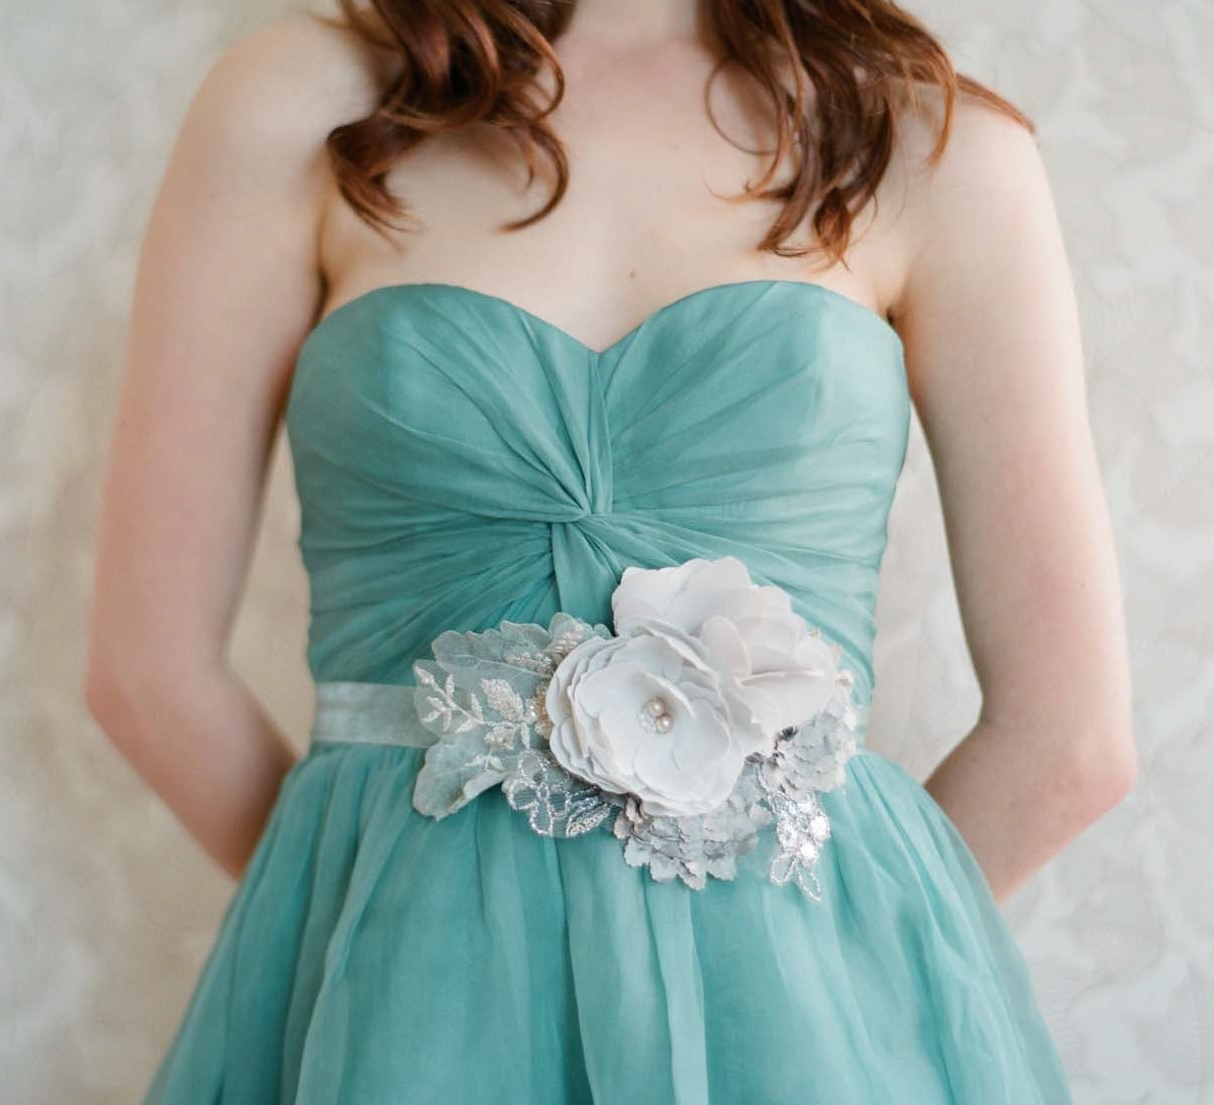 special occasion and wedding jewelry and accessories - belt from Adornments by Myra Callan